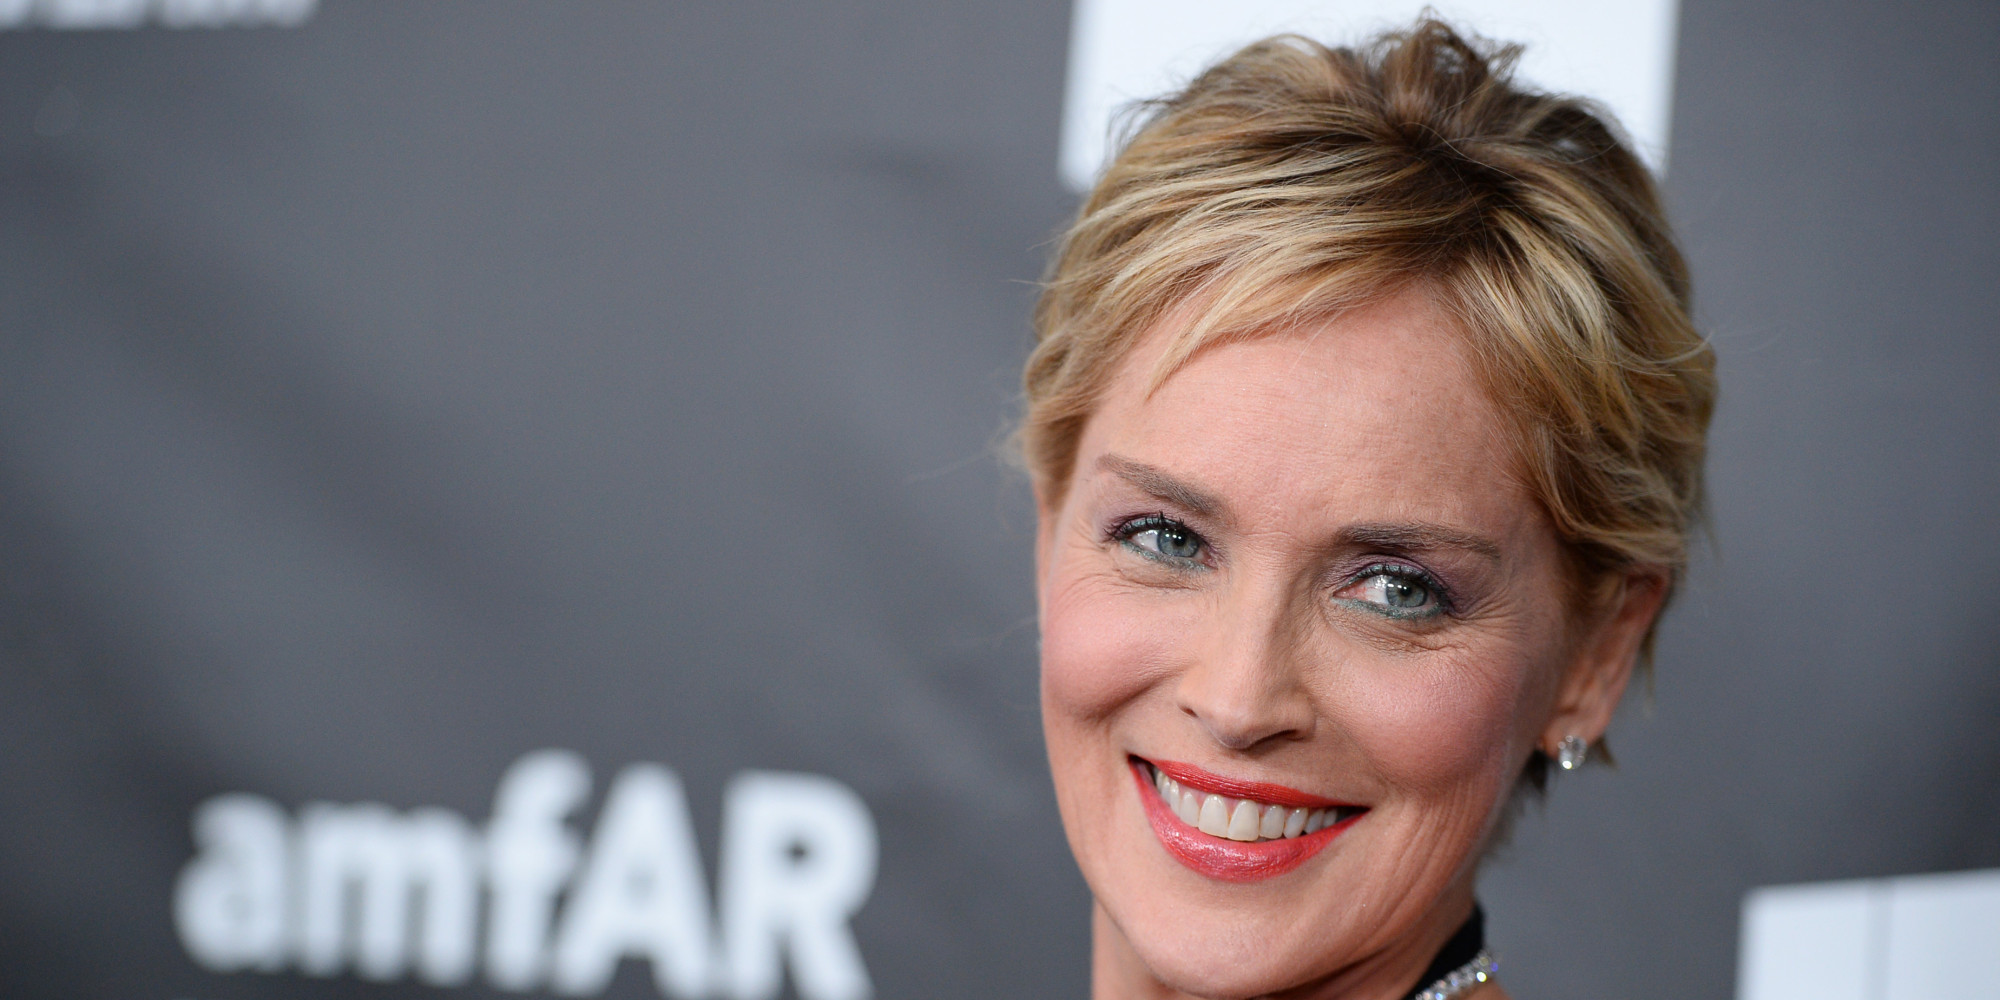 6 Short Hairstyles That Wont Make You Look Older | HuffPost